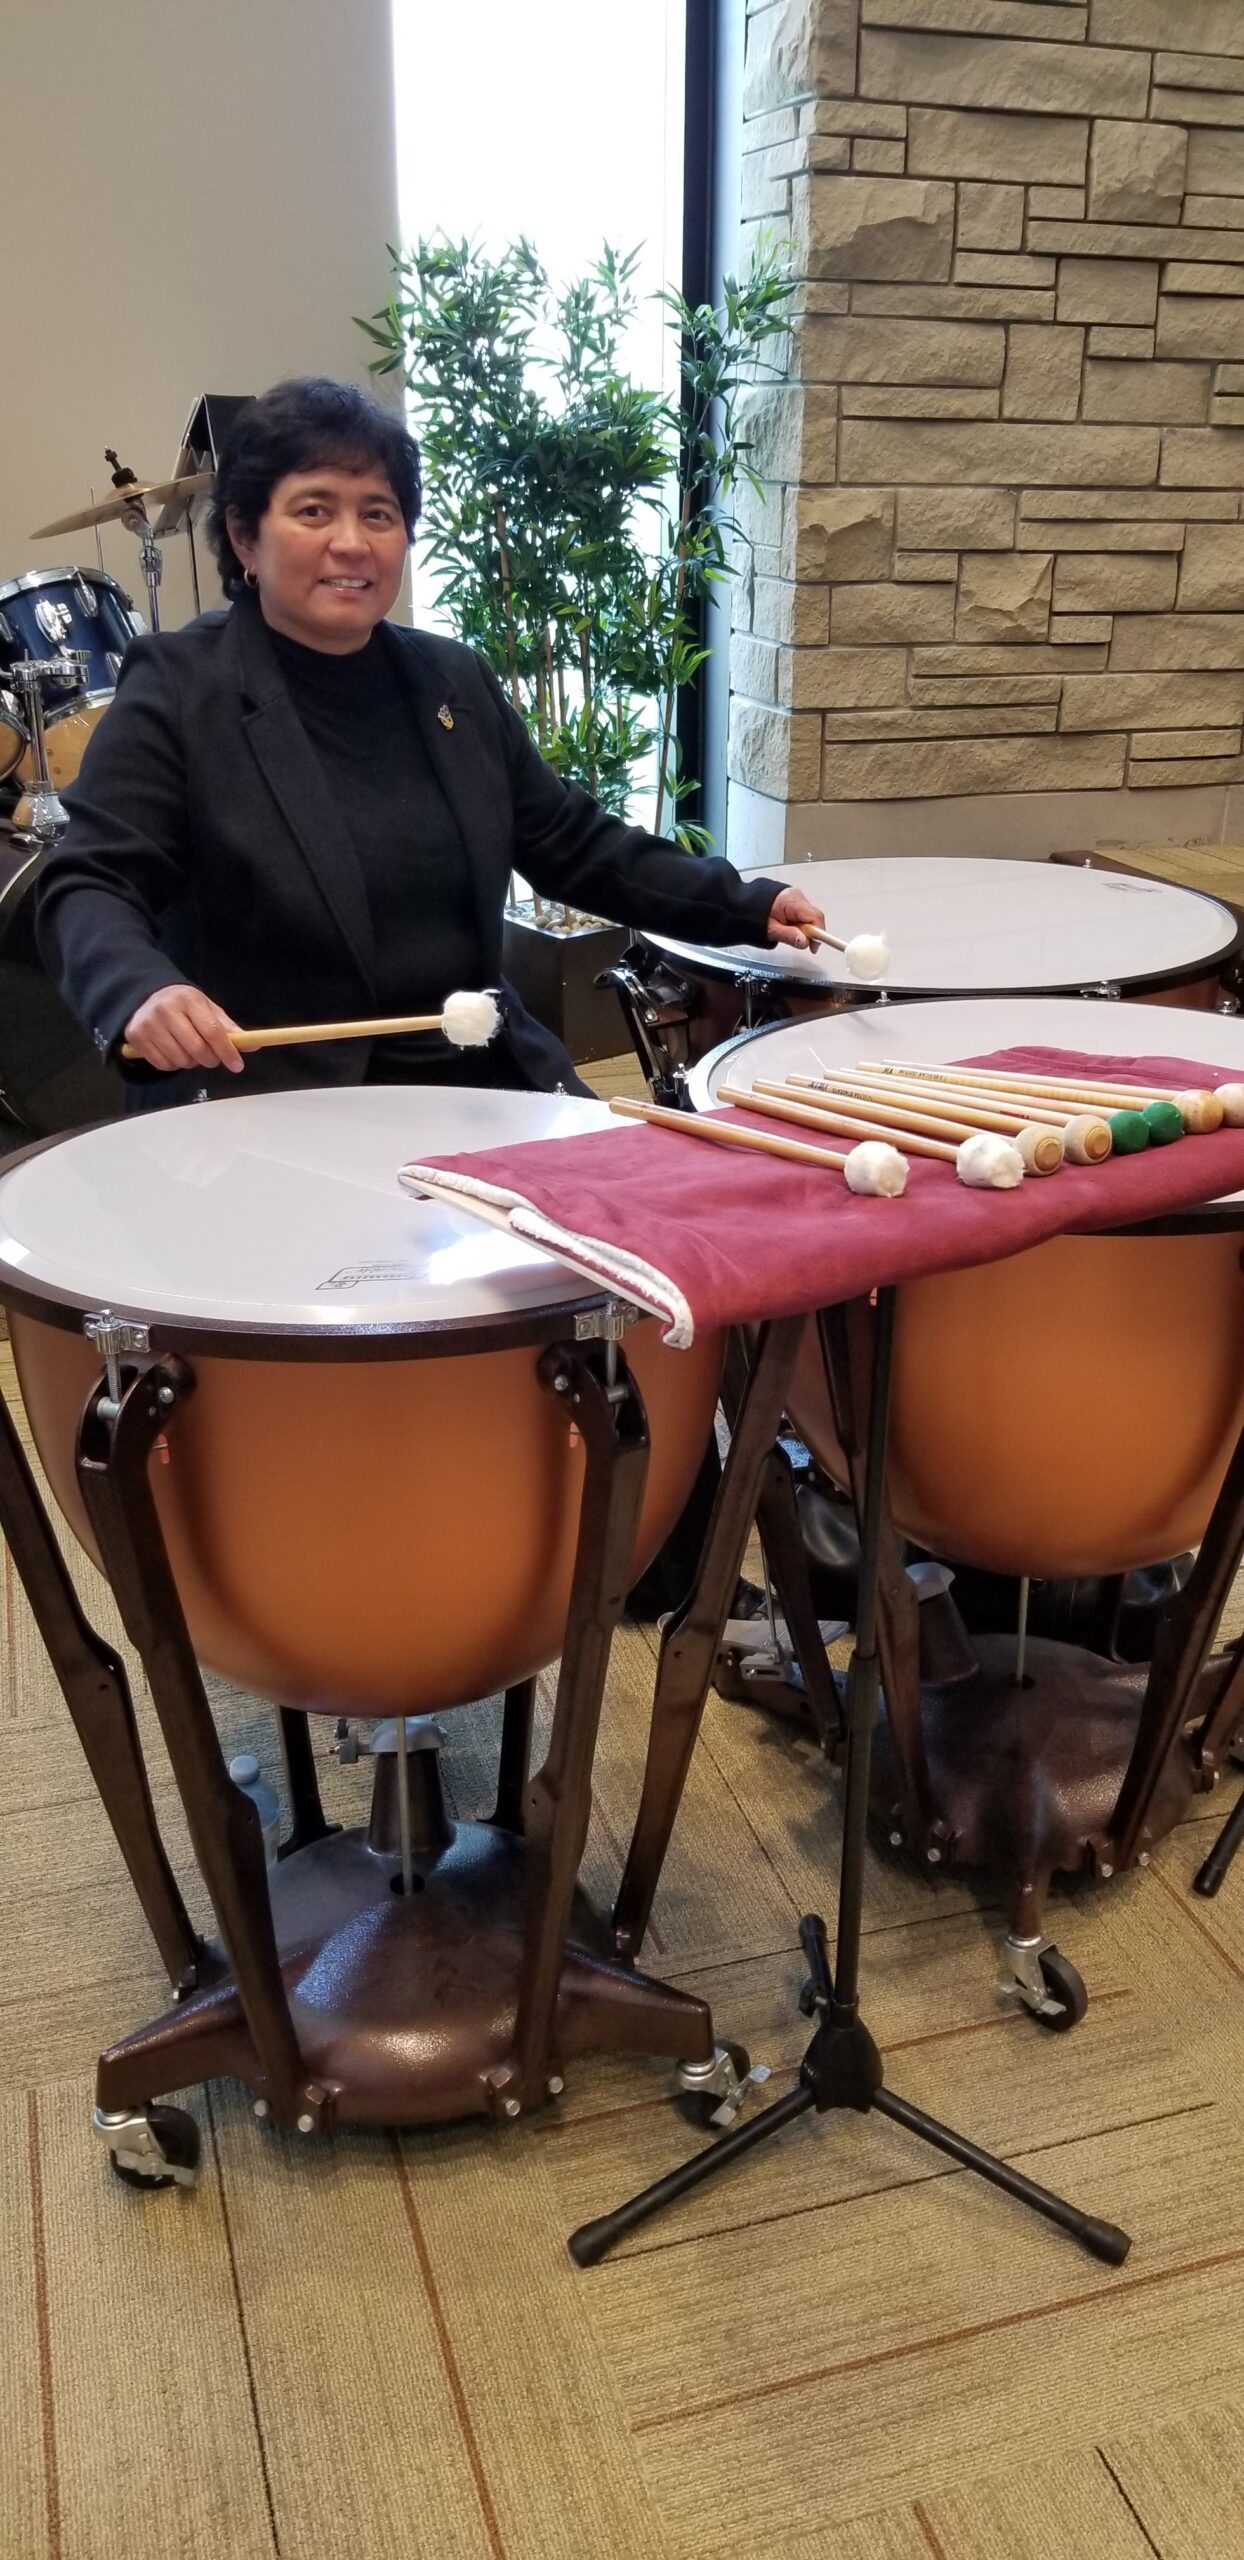 Timpanist with local community band